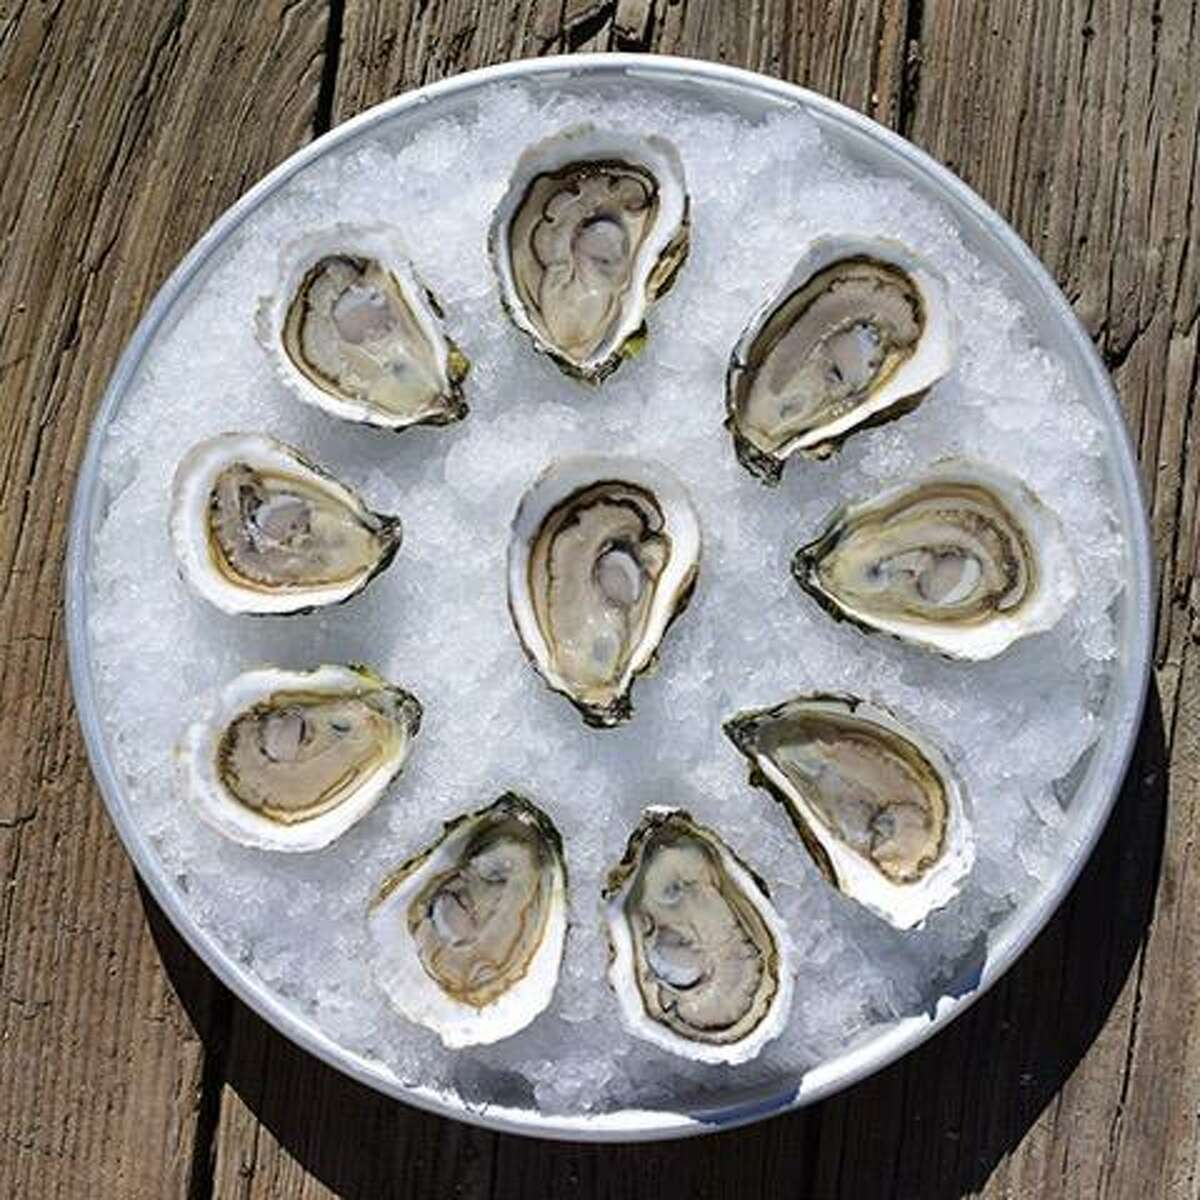 The Mystic River Oyster Festival is this Saturday at Mystic Seaport. The event is free with regular museum admission. Find out more.